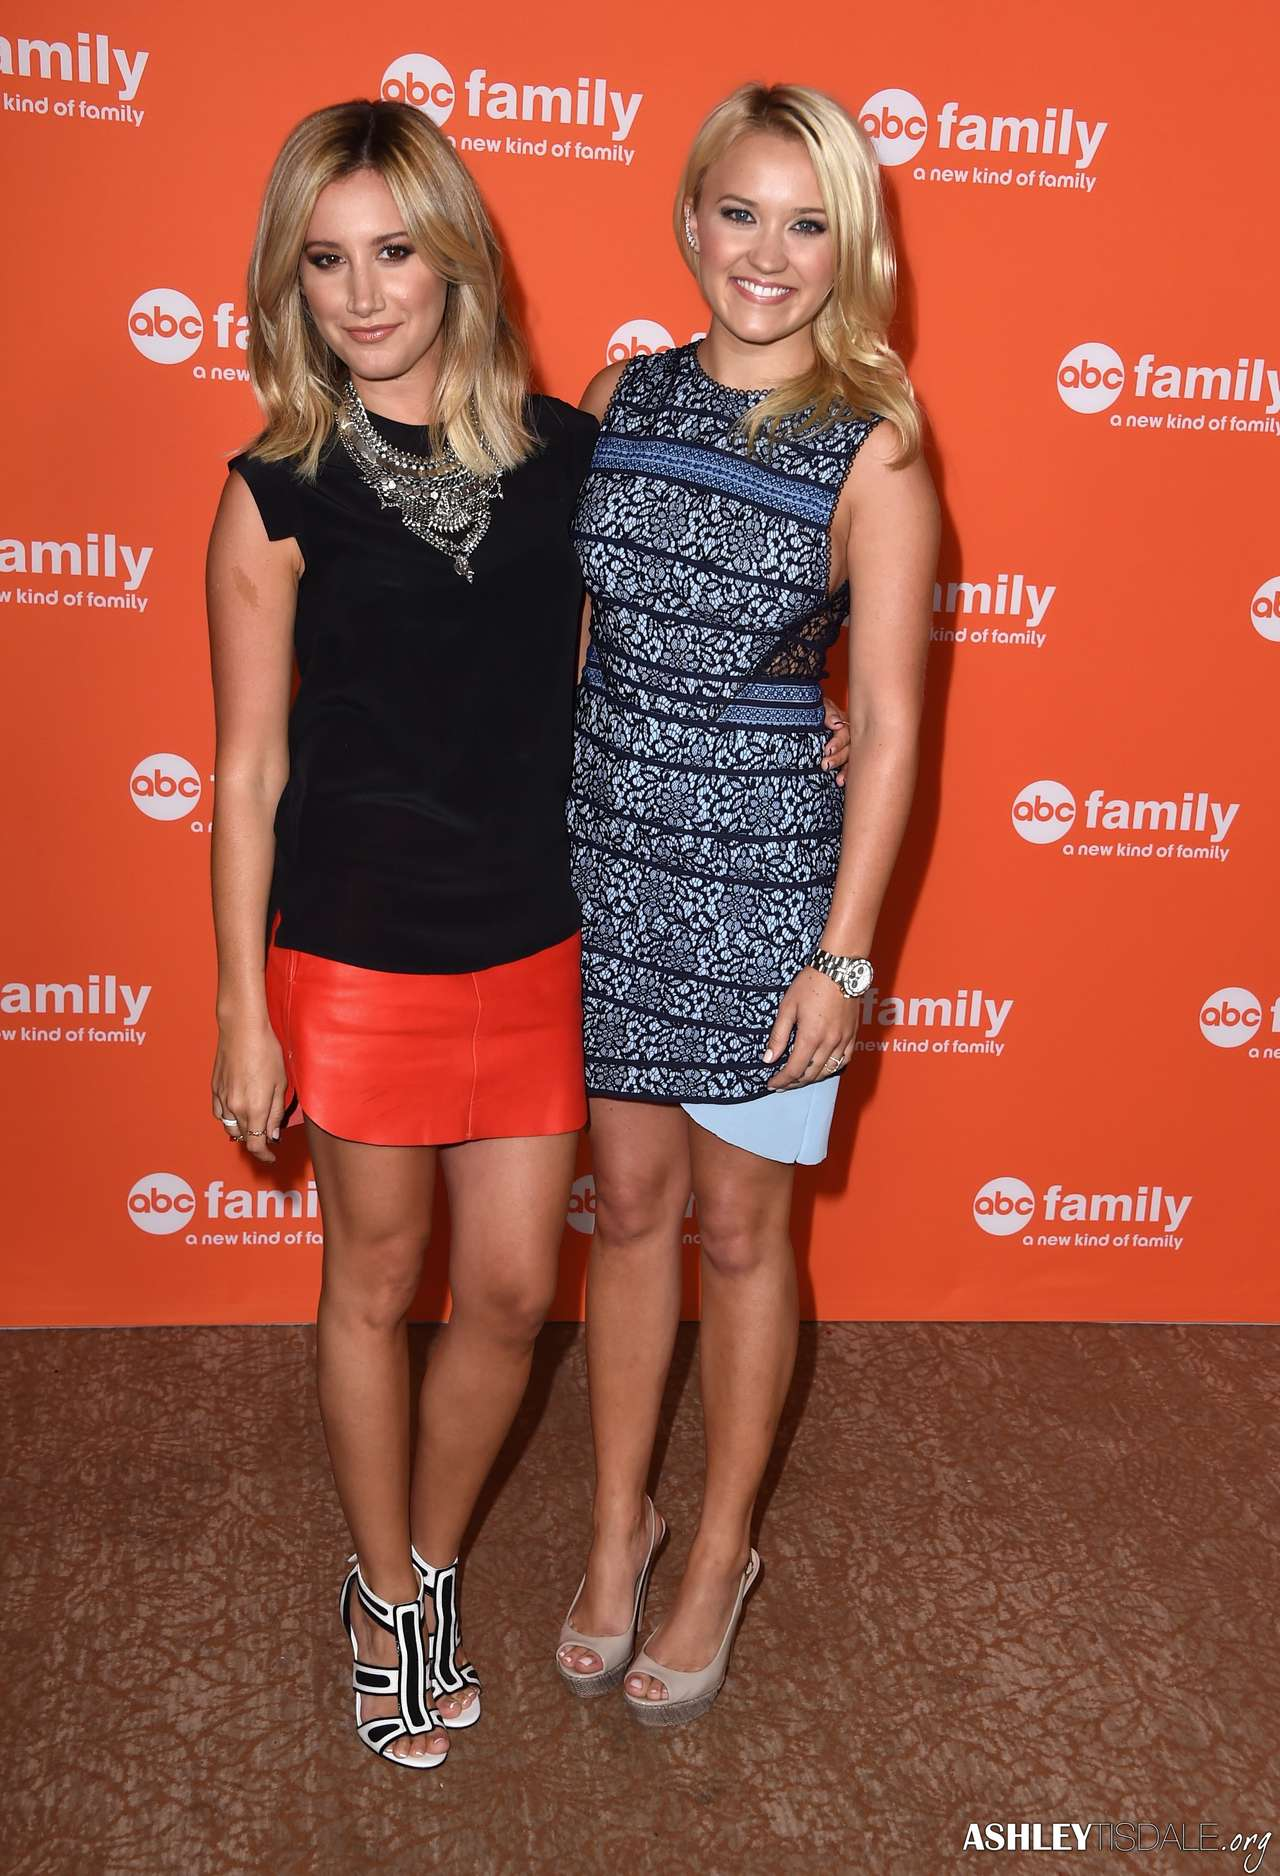 Ashley Tisdale 2014 : Ashley Tisdale at 2014 Disney ABC TCA Summer Press Tour in Beverly Hills -02